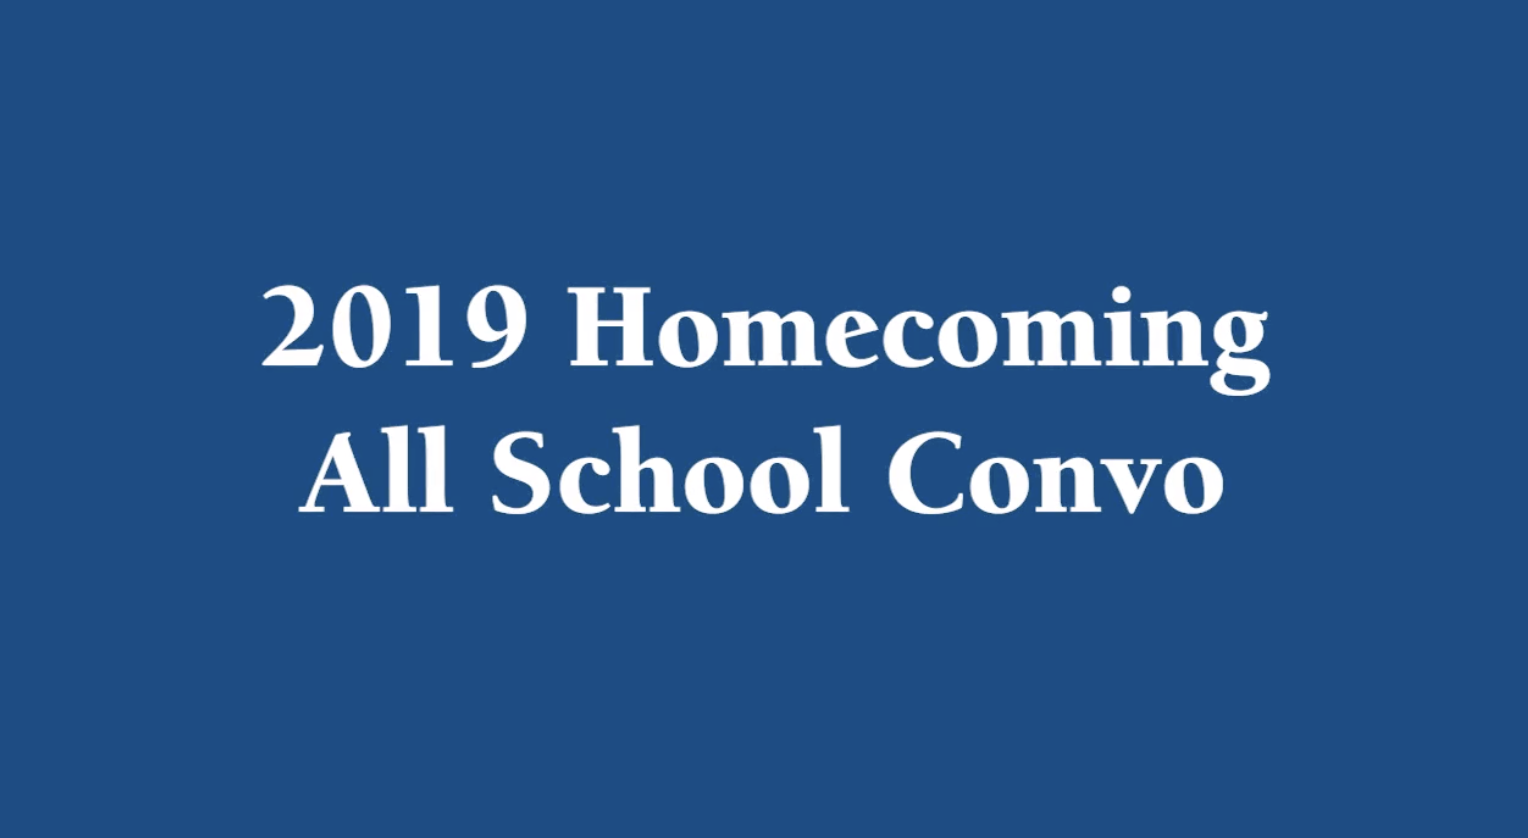 2019 Homecoming Convo